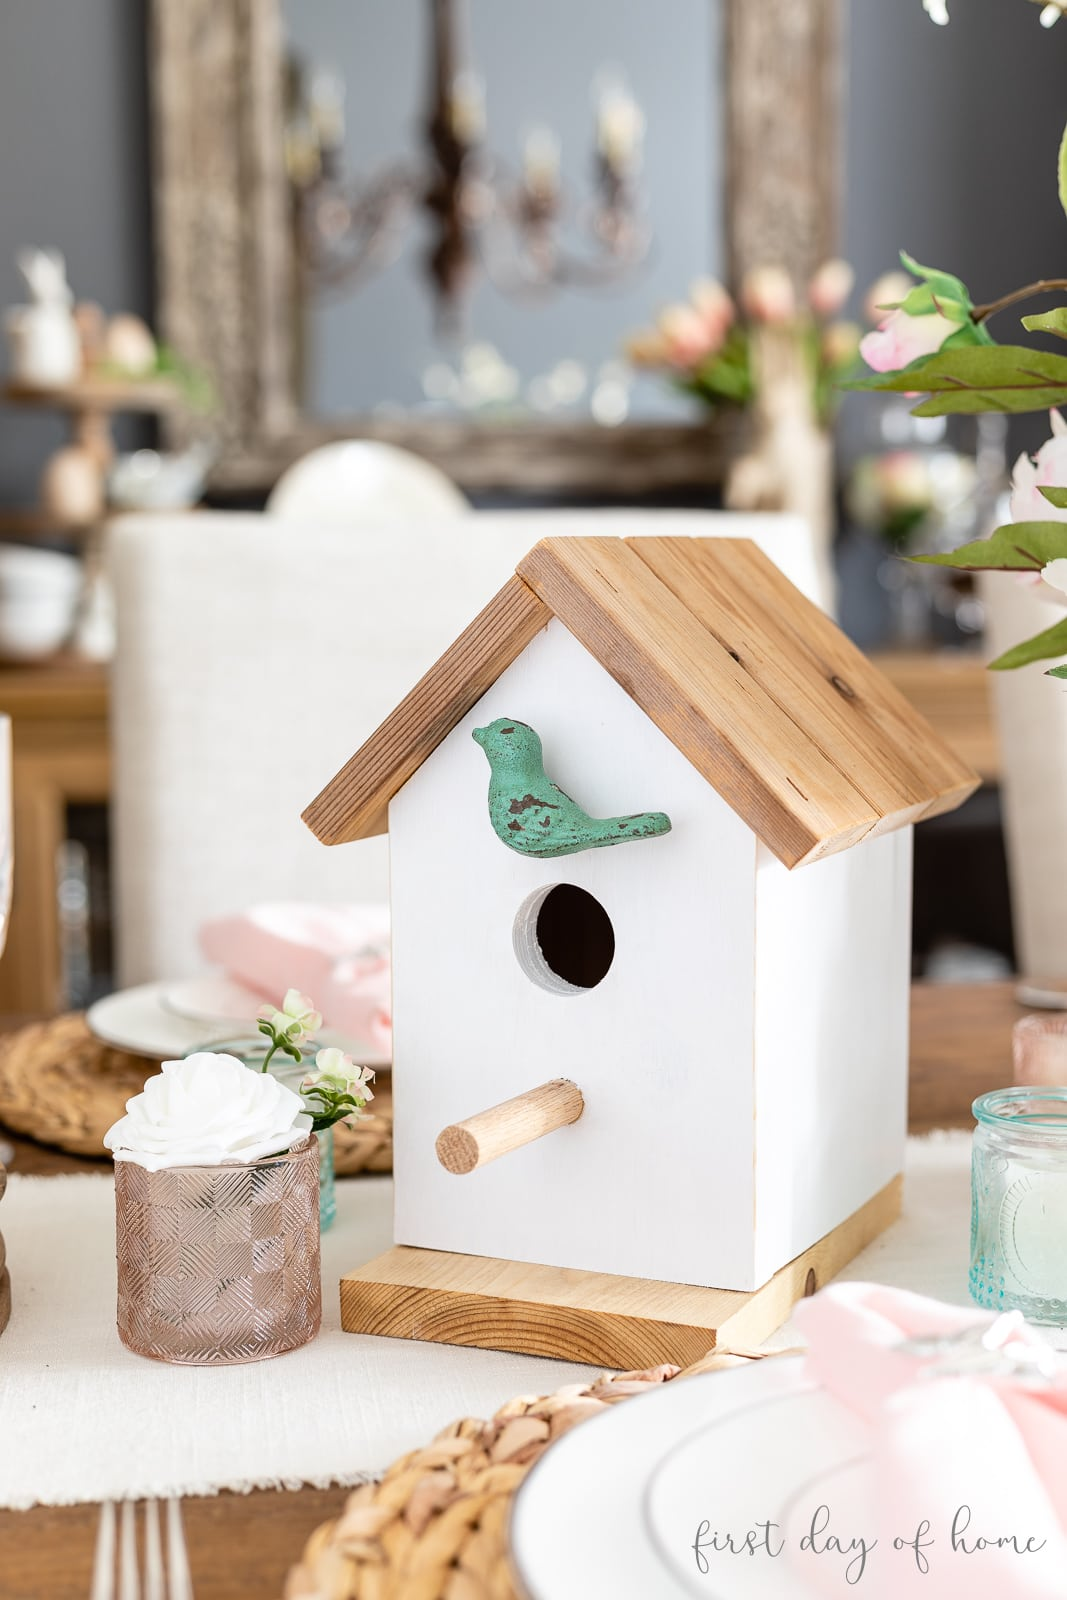 DIY birdhouse as spring table decor accent with small pink votives and floral arrangements